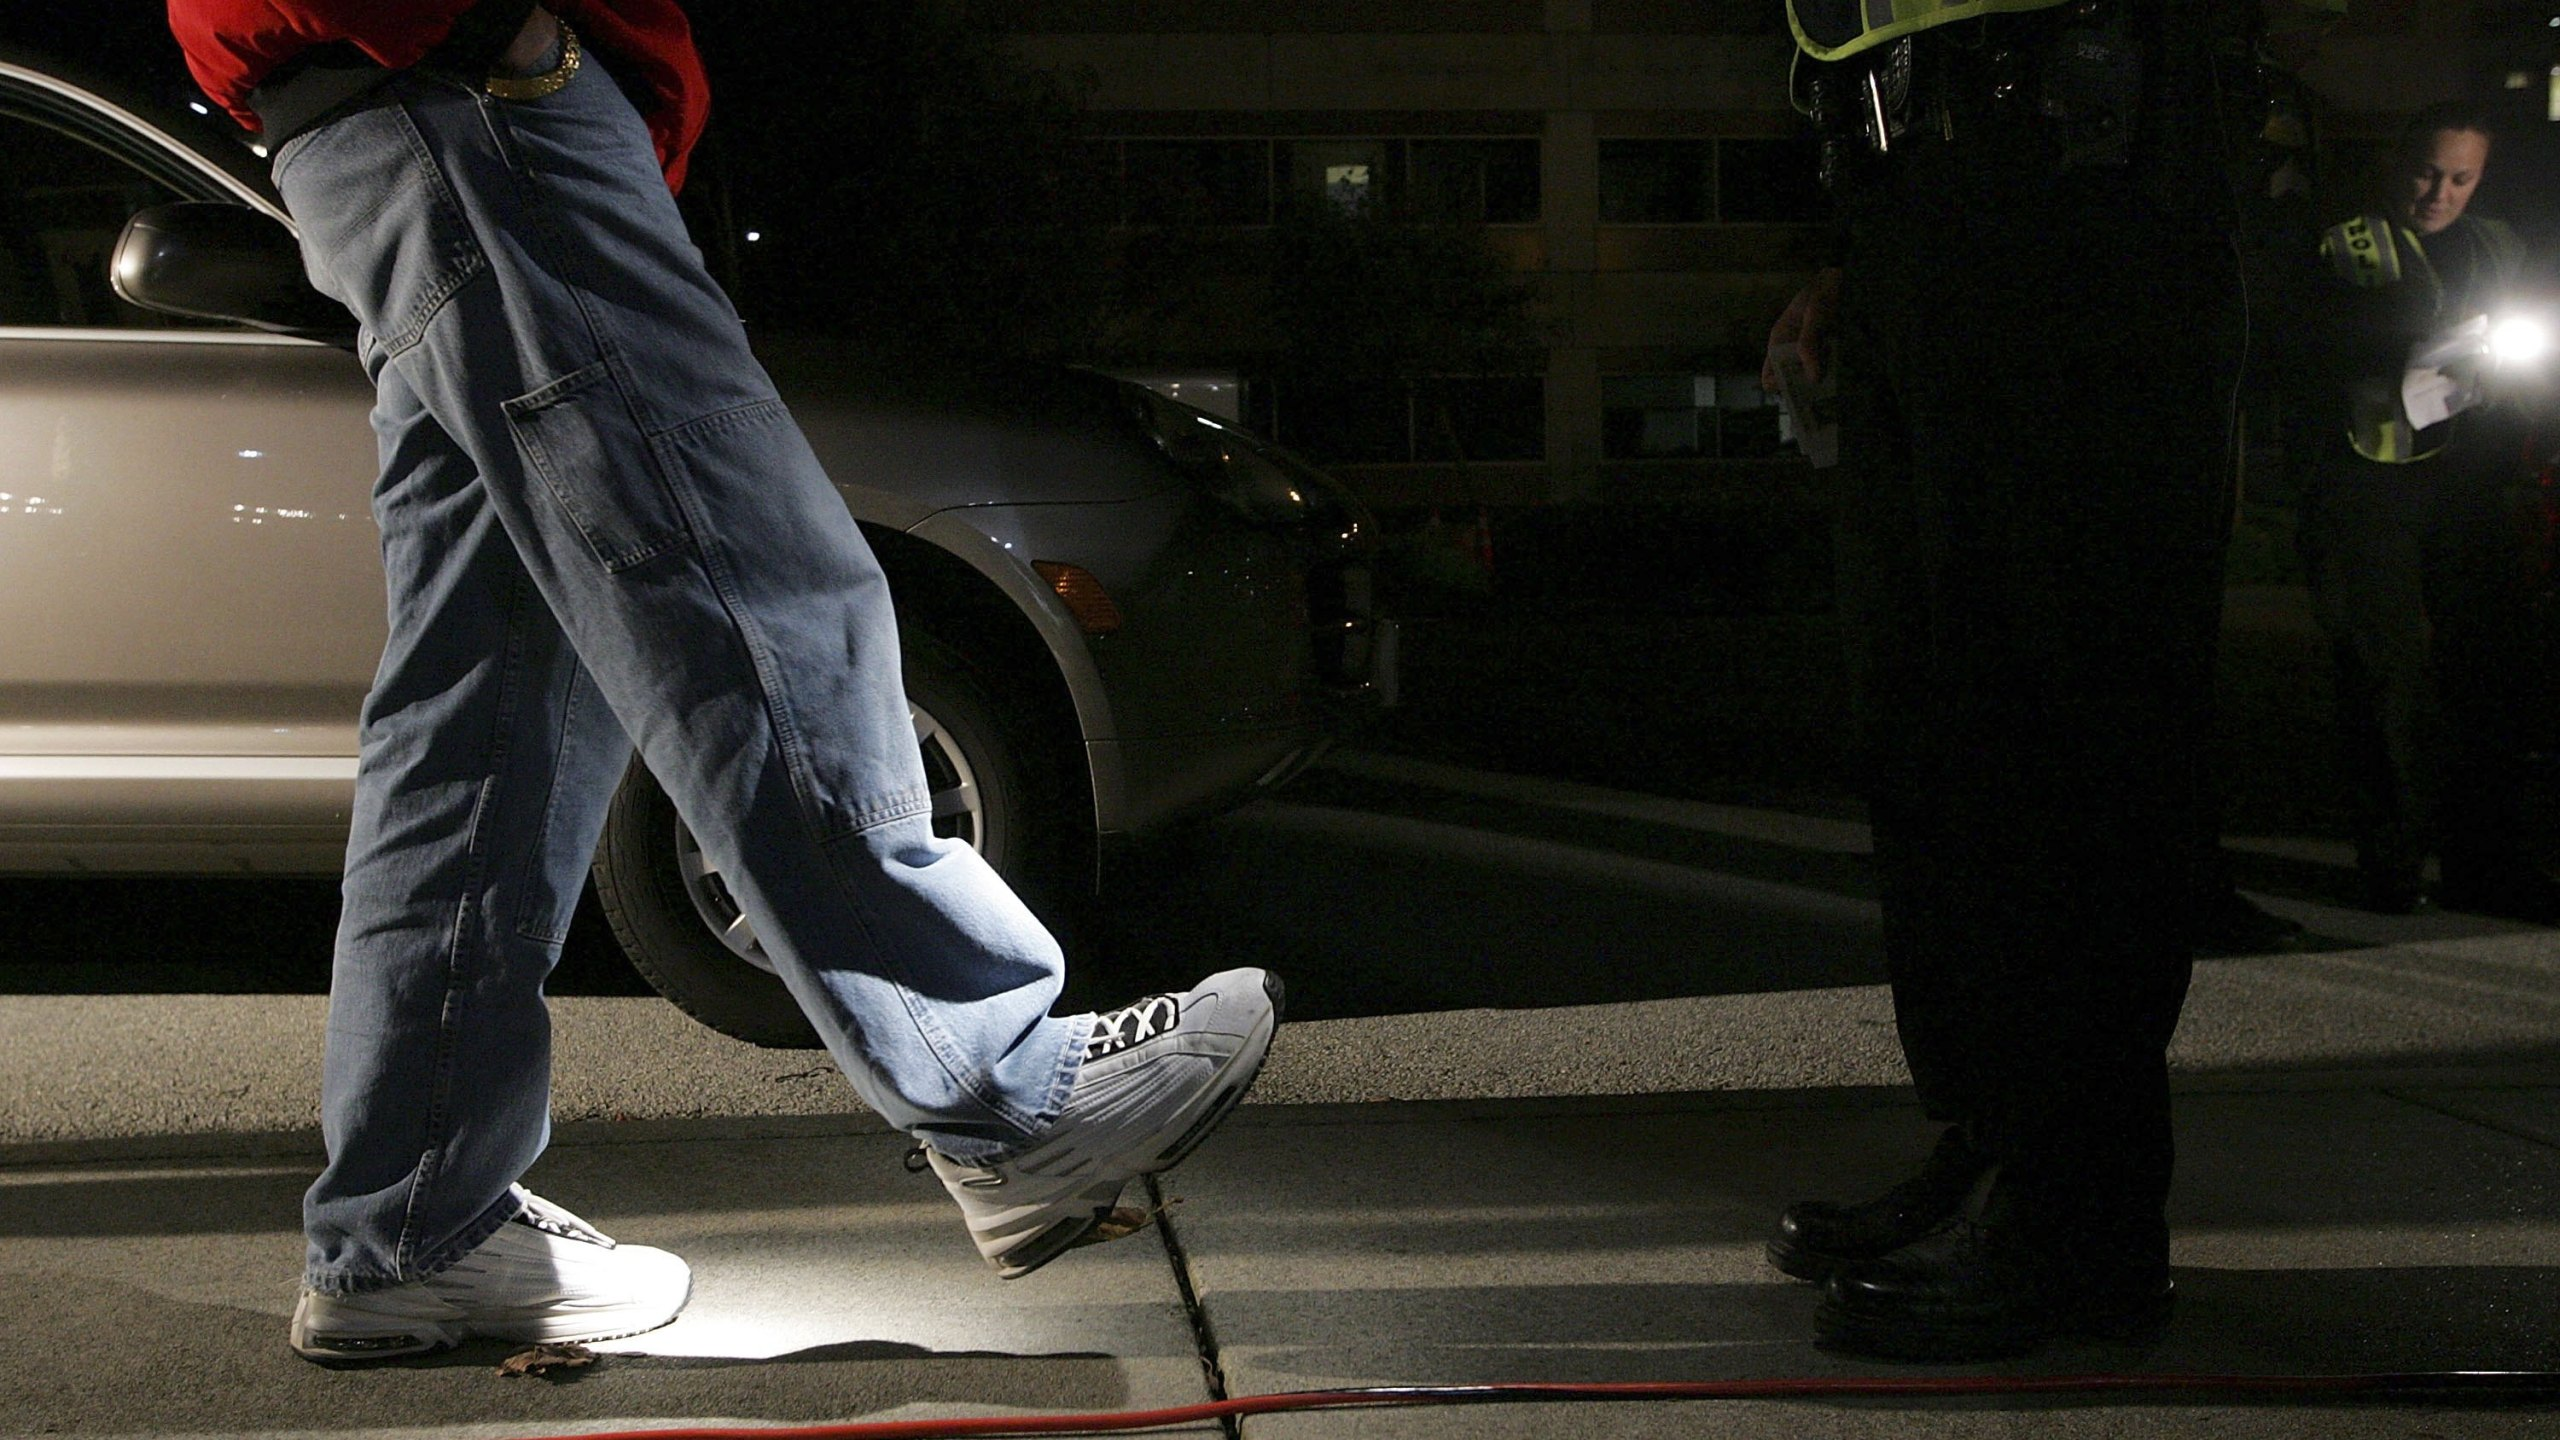 A man is given a field sobriety test after he was stopped by police officers at a DUI checkpoint in San Bruno in this file photo from Nov. 27, 2006. (Justin Sullivan/Getty Images)